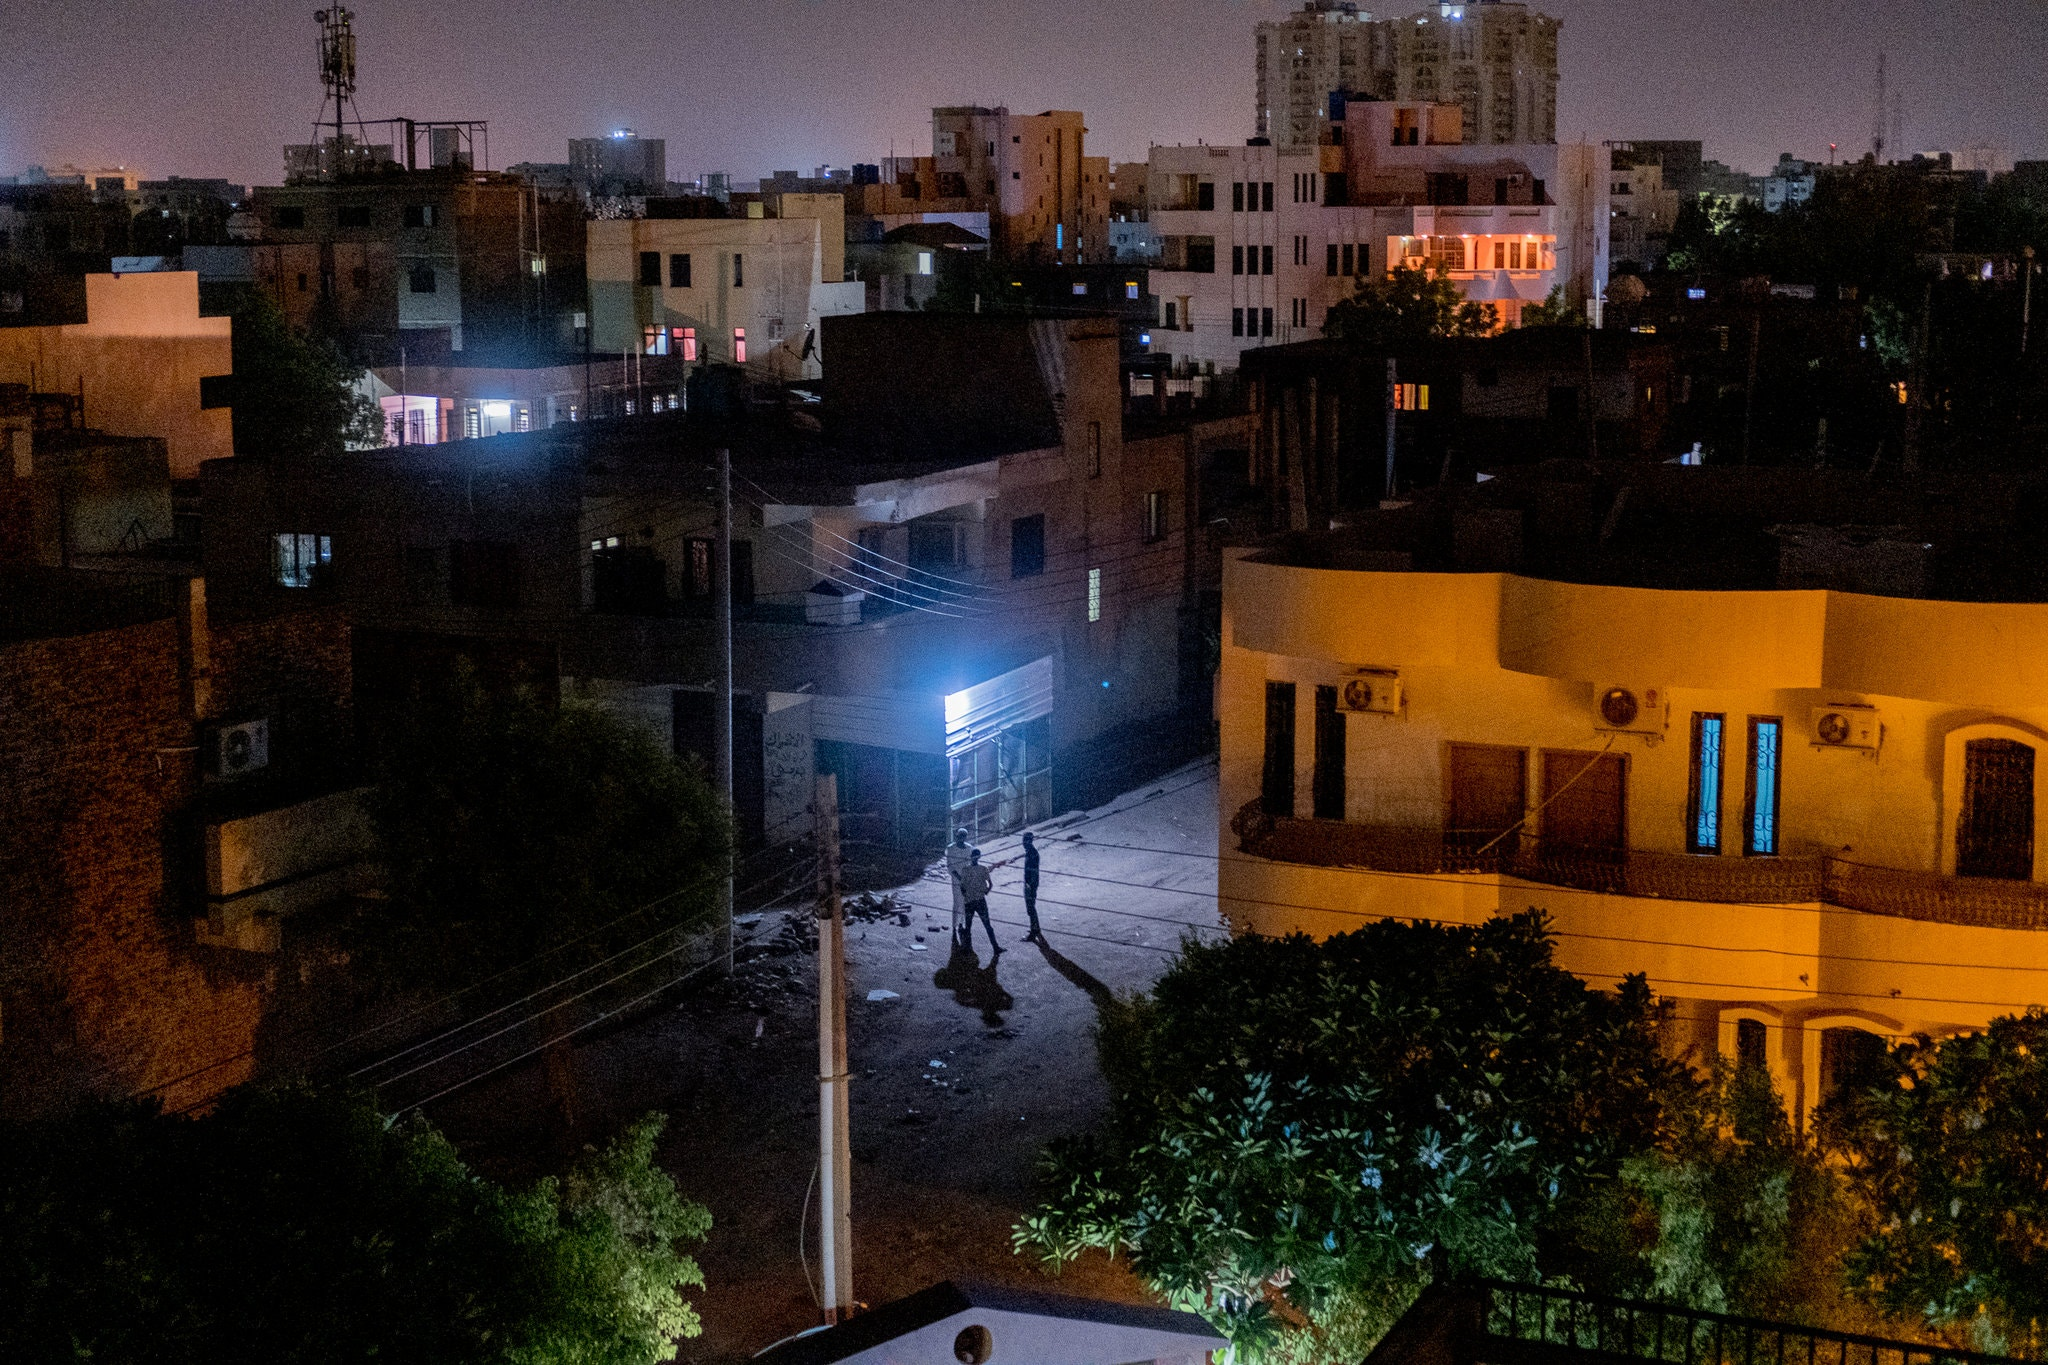 Burri, a Khartoum neighborhood that was at the center of protests in Sudan. Credit Declan Walsh/The New York Times